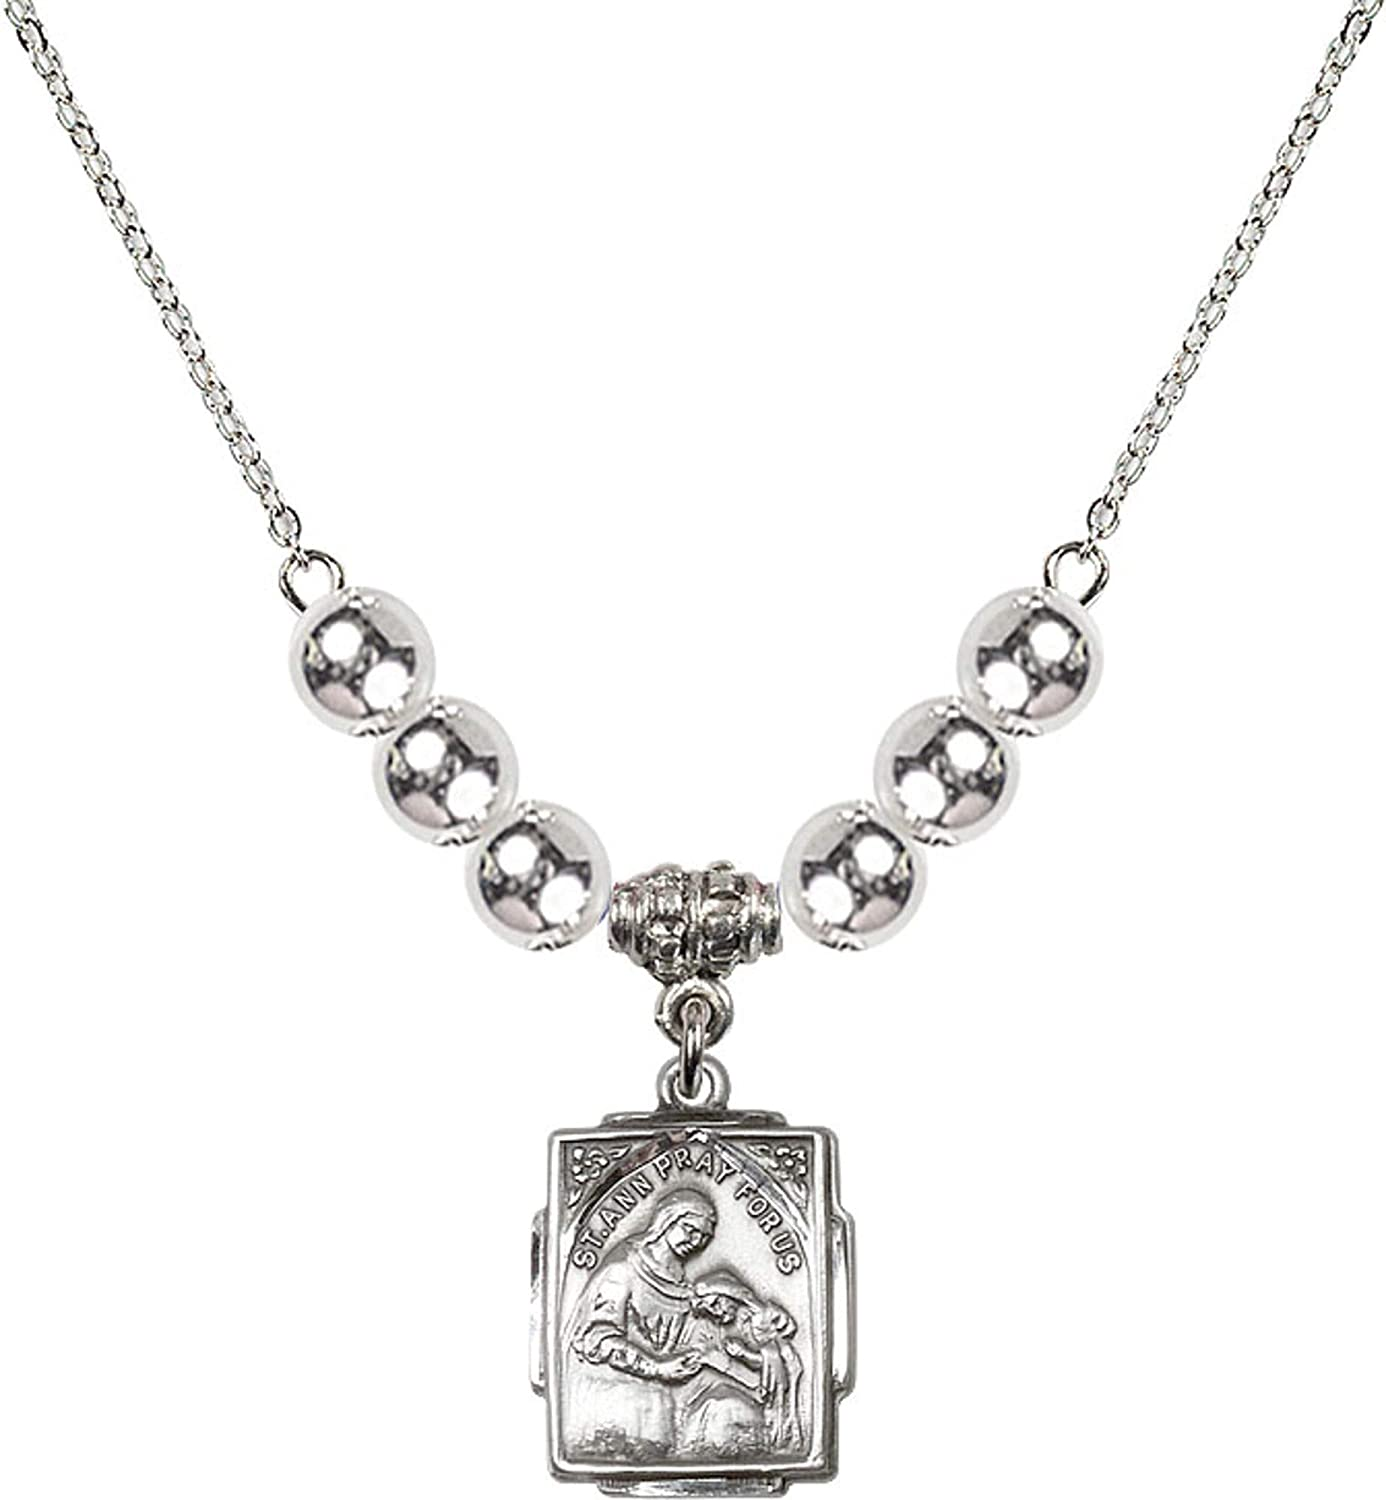 Bonyak Jewelry 18 Inch Rhodium Plated Necklace w// 6mm Sterling Silver Beads and Saint Ann Charm